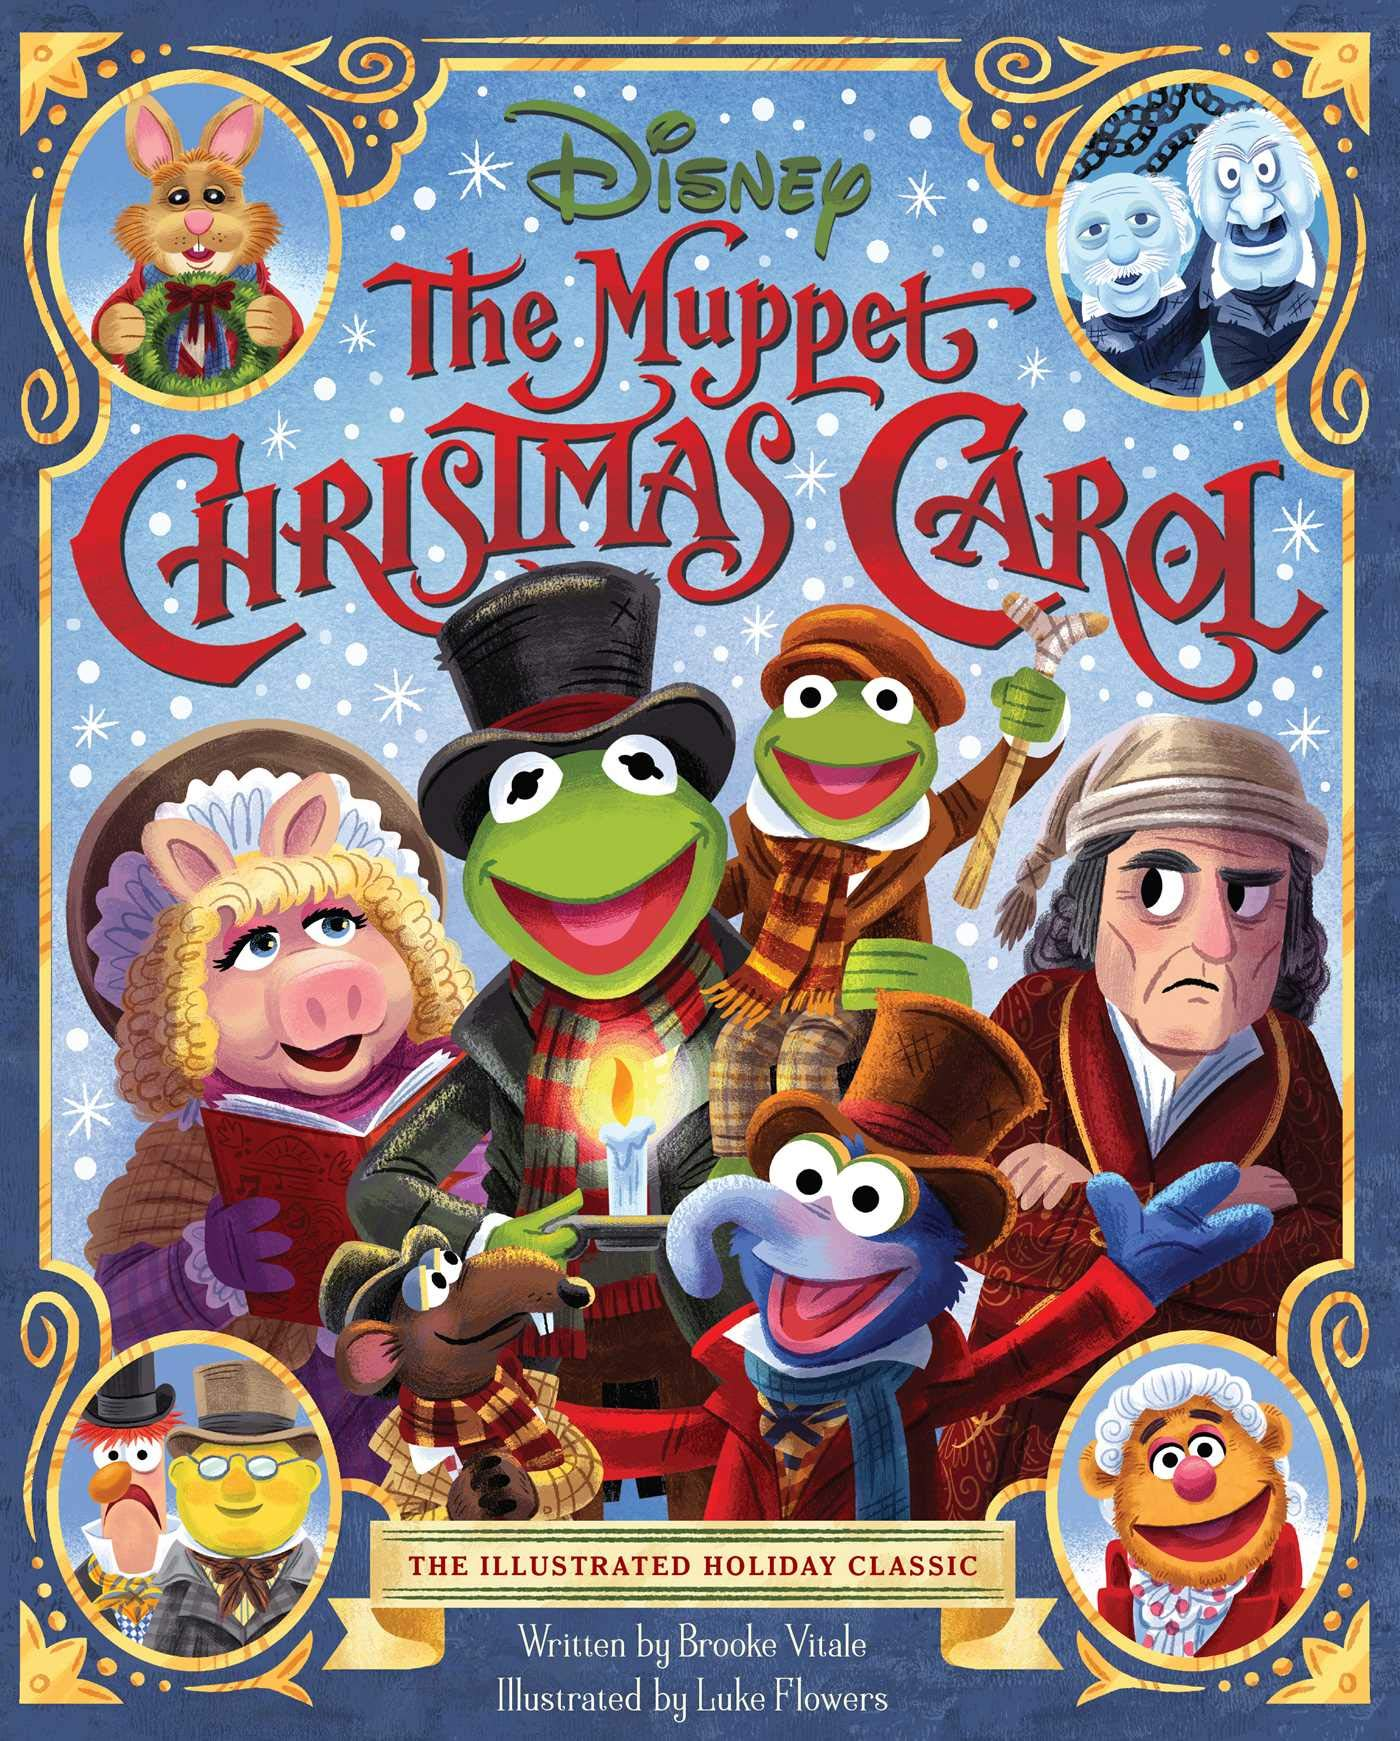 The Muppet Christmas Carol.The Muppet Christmas Carol The Illustrated Holiday Classic